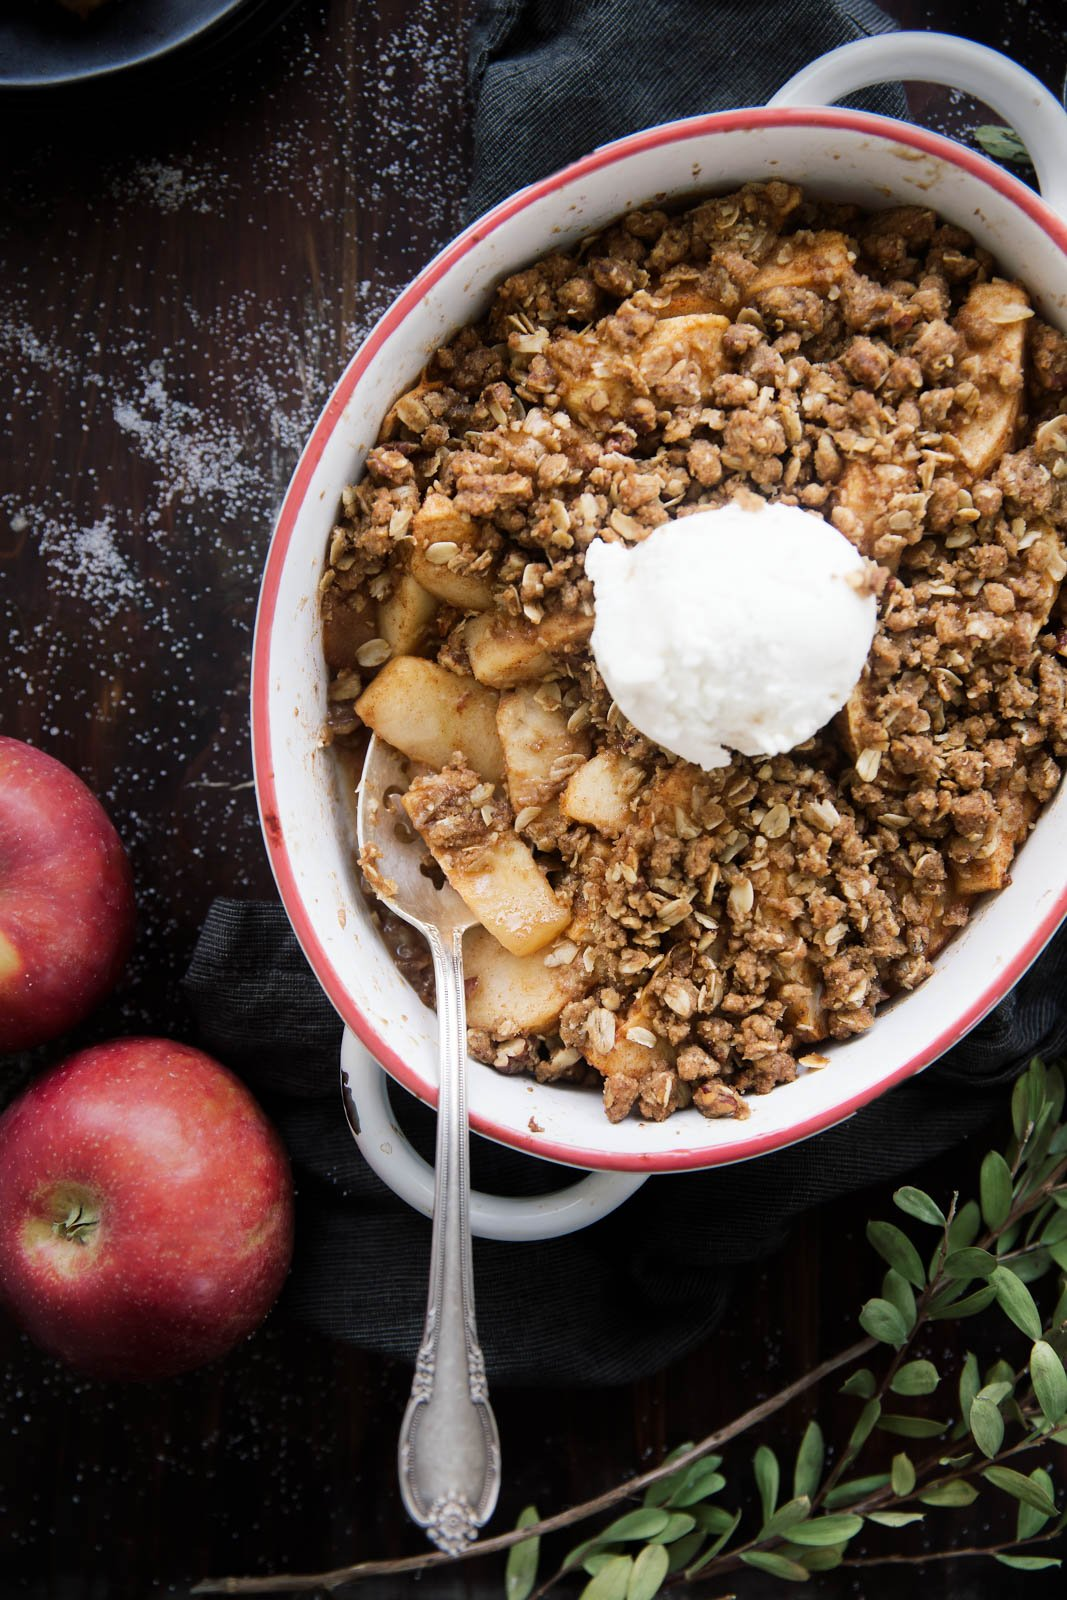 Healthy Apple Crisp naturally sweetened with maple syrup and topped with a crunchy oat pecan topping! Serve warm with vanilla bean ice cream.